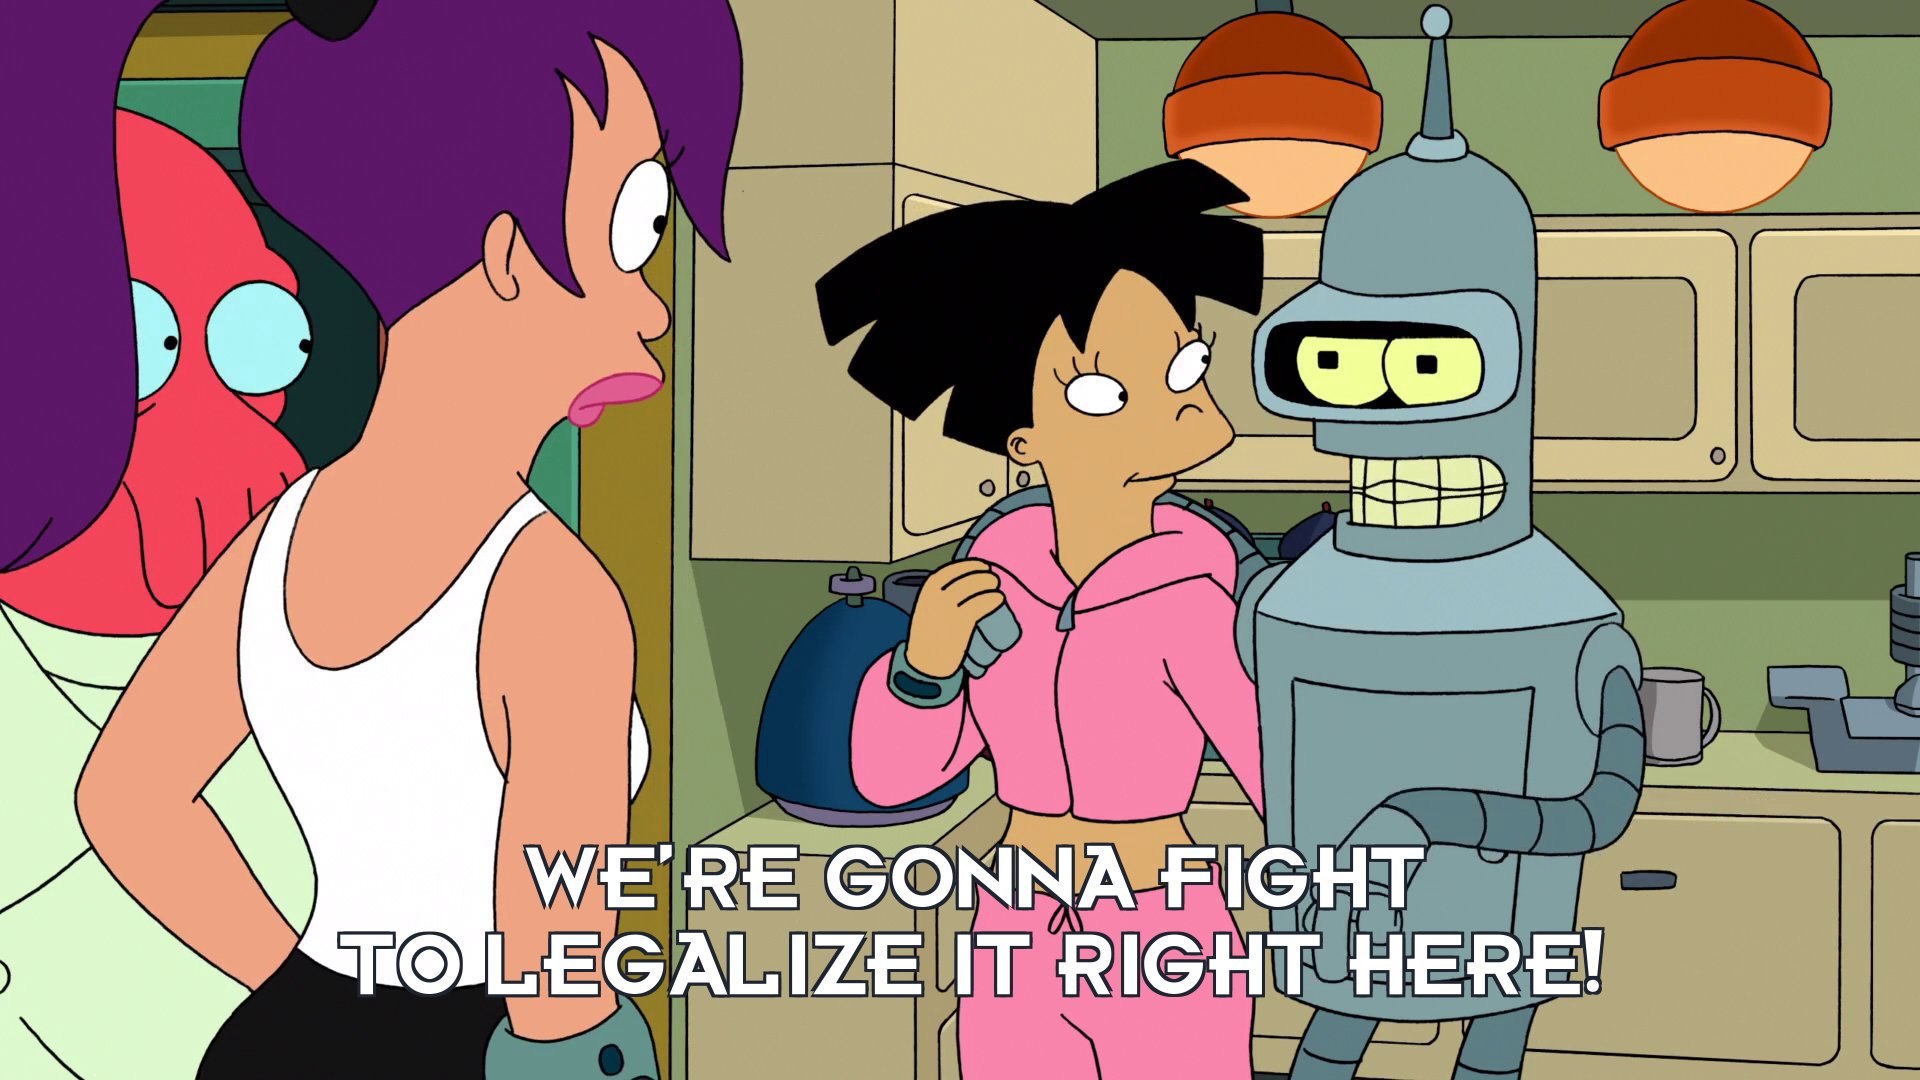 Bender Bending Rodriguez: We're gonna fight to legalize it right here!